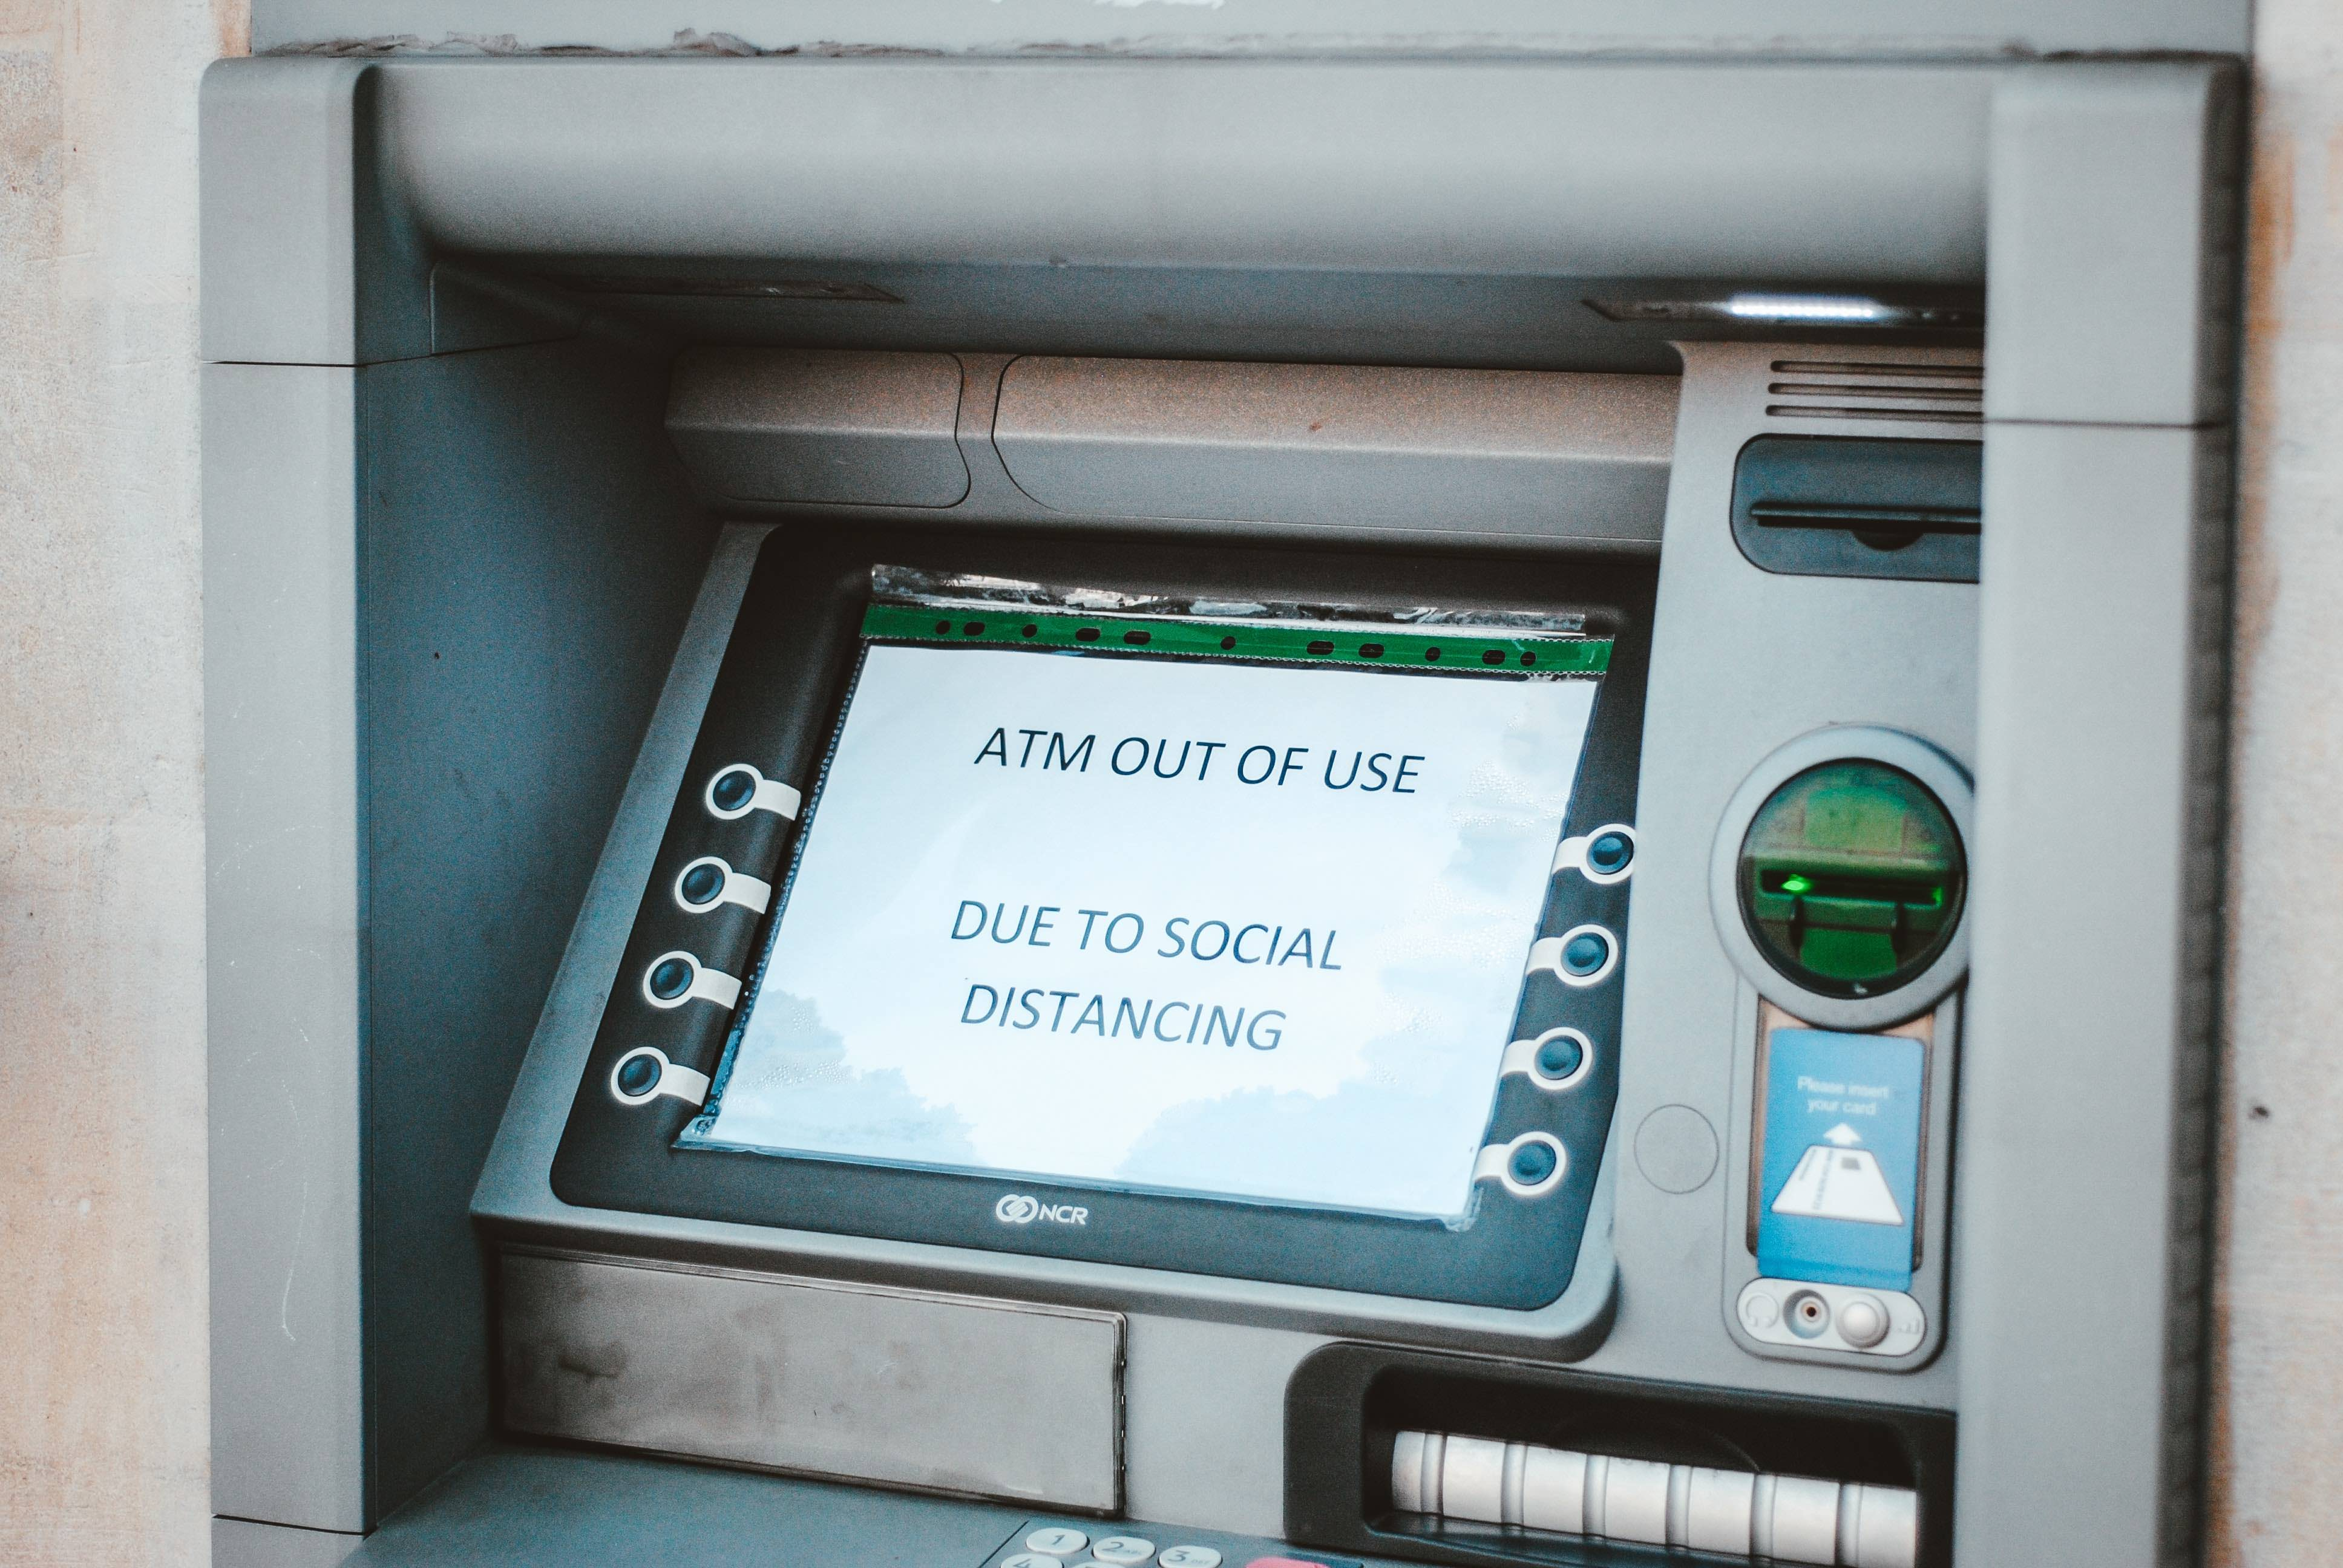 ATM out of use due to social distancing